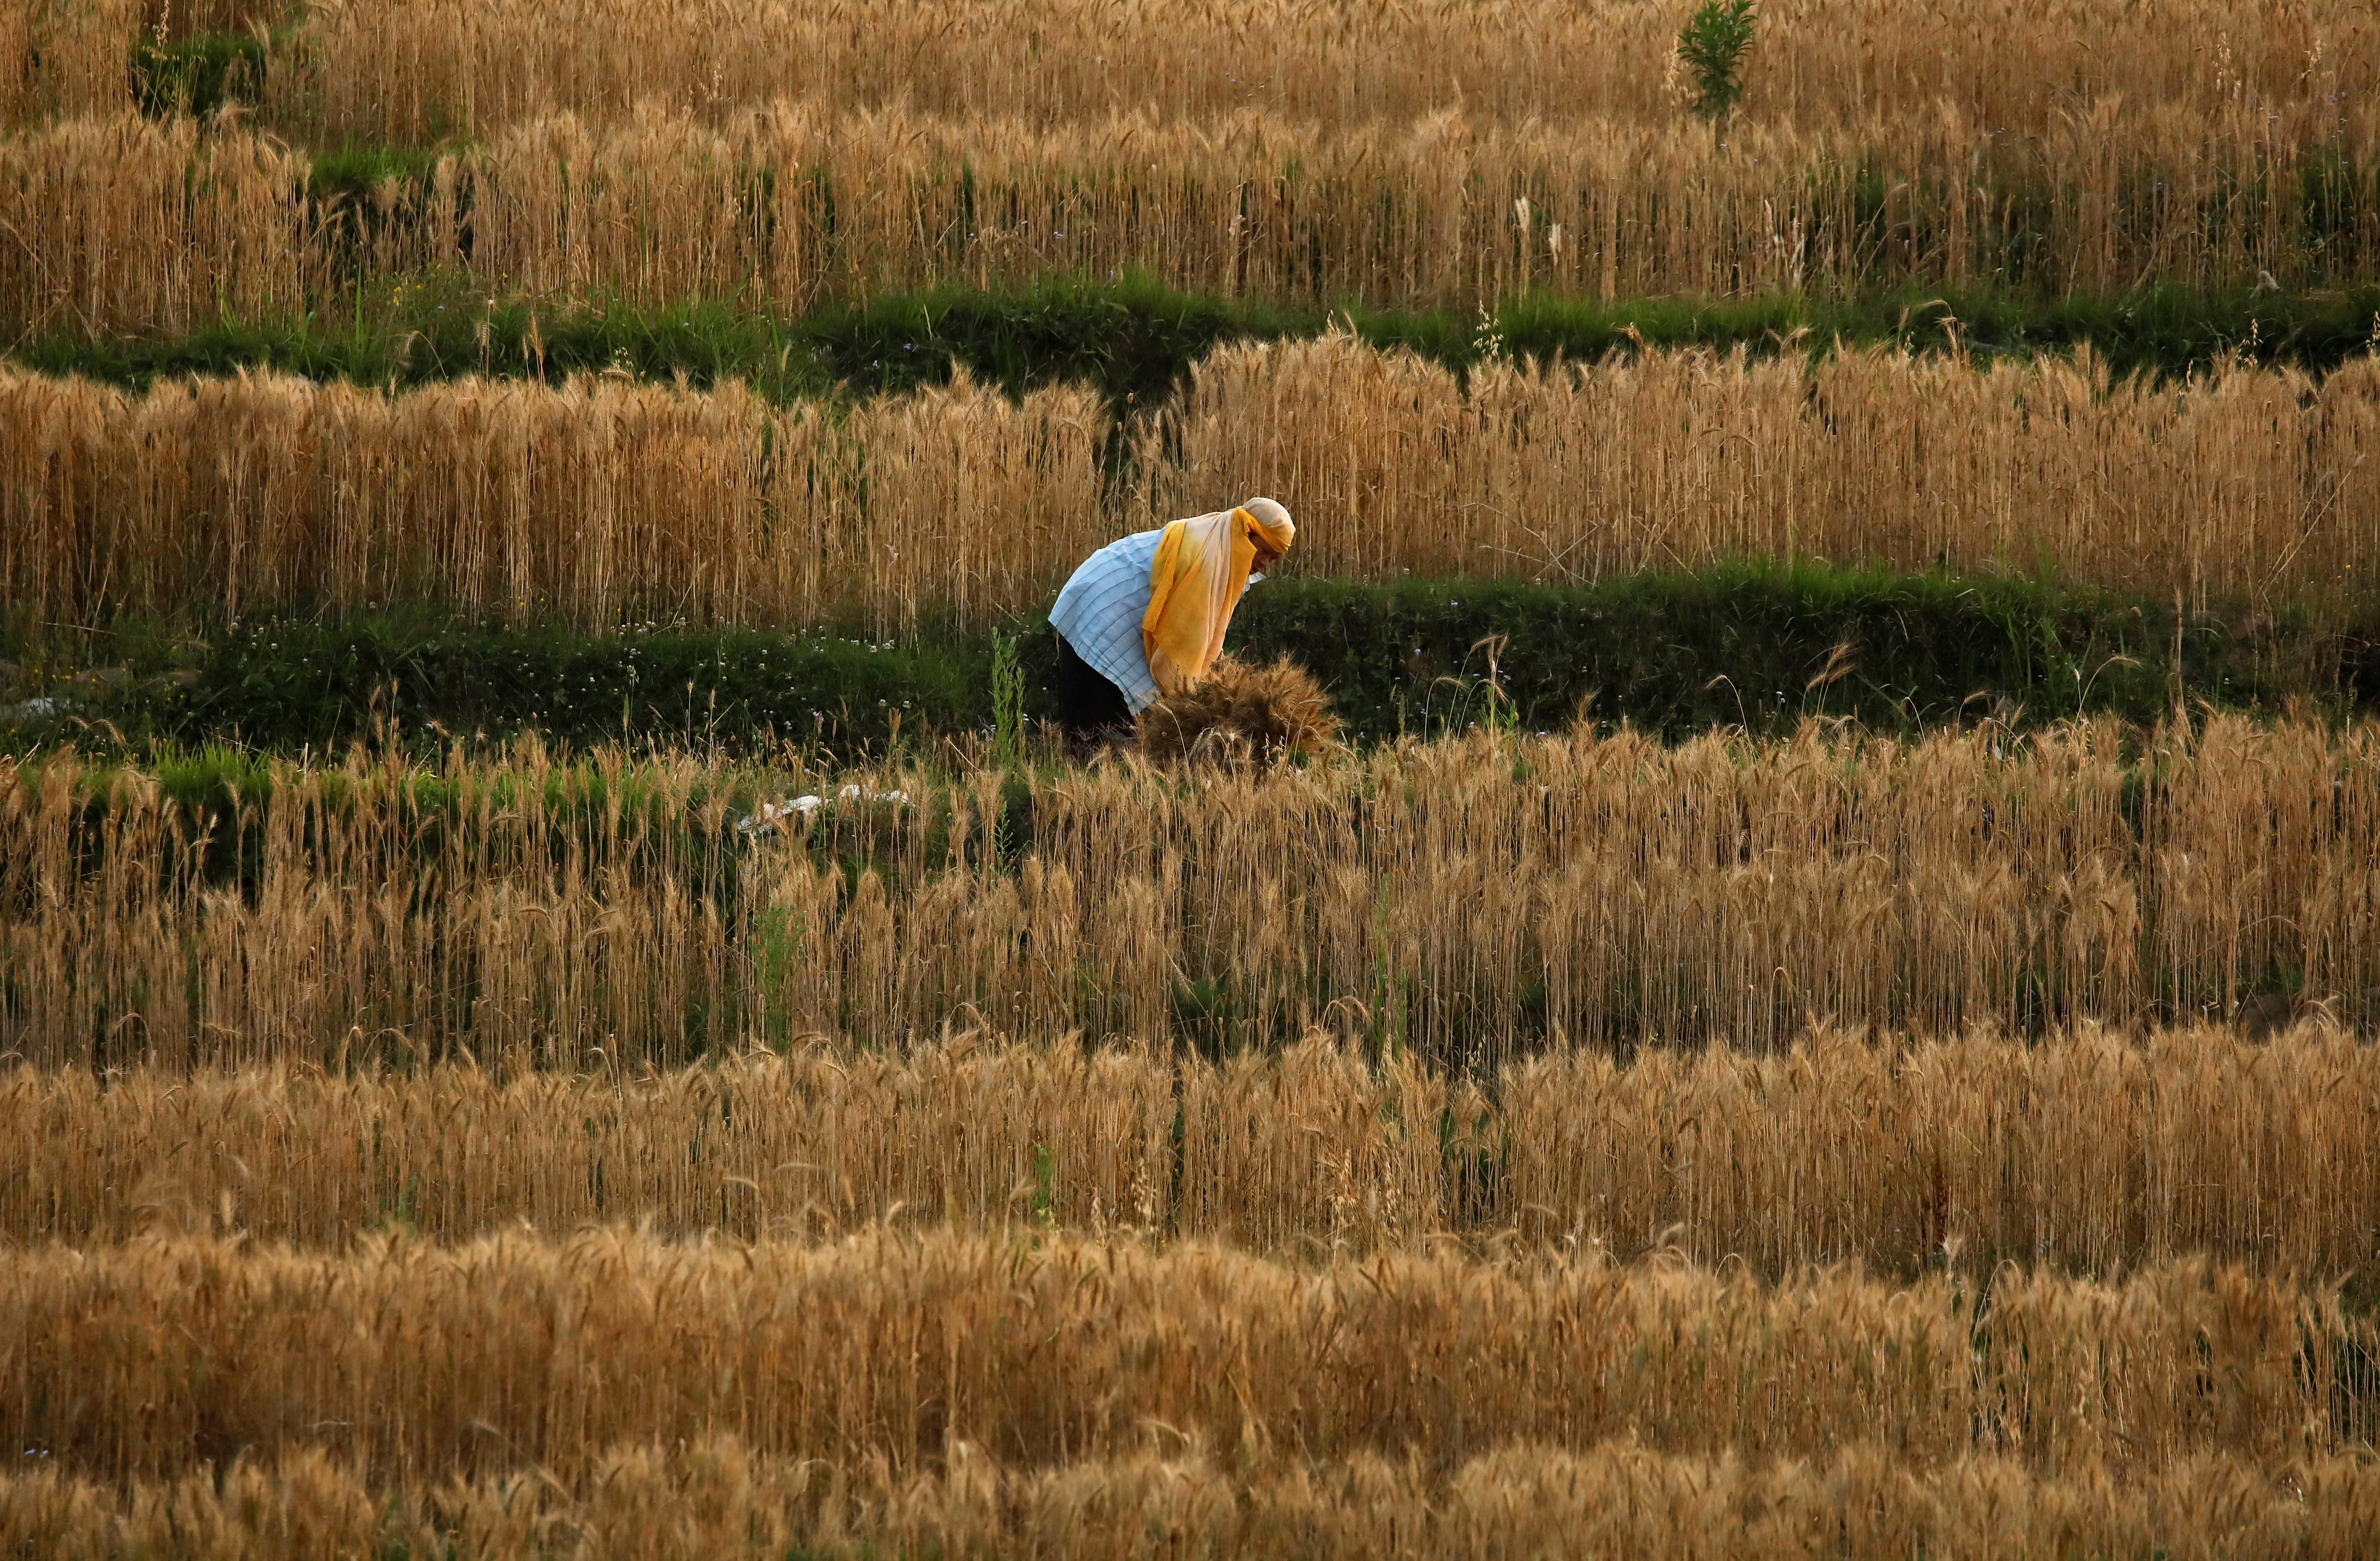 A farmer harvest wheat during the sixty day of the lockdown imposed by the government amid concerns about the spread of the coronavirus disease (COVID-19) outbreak, in Lalitpur, Nepal May 22, 2020.